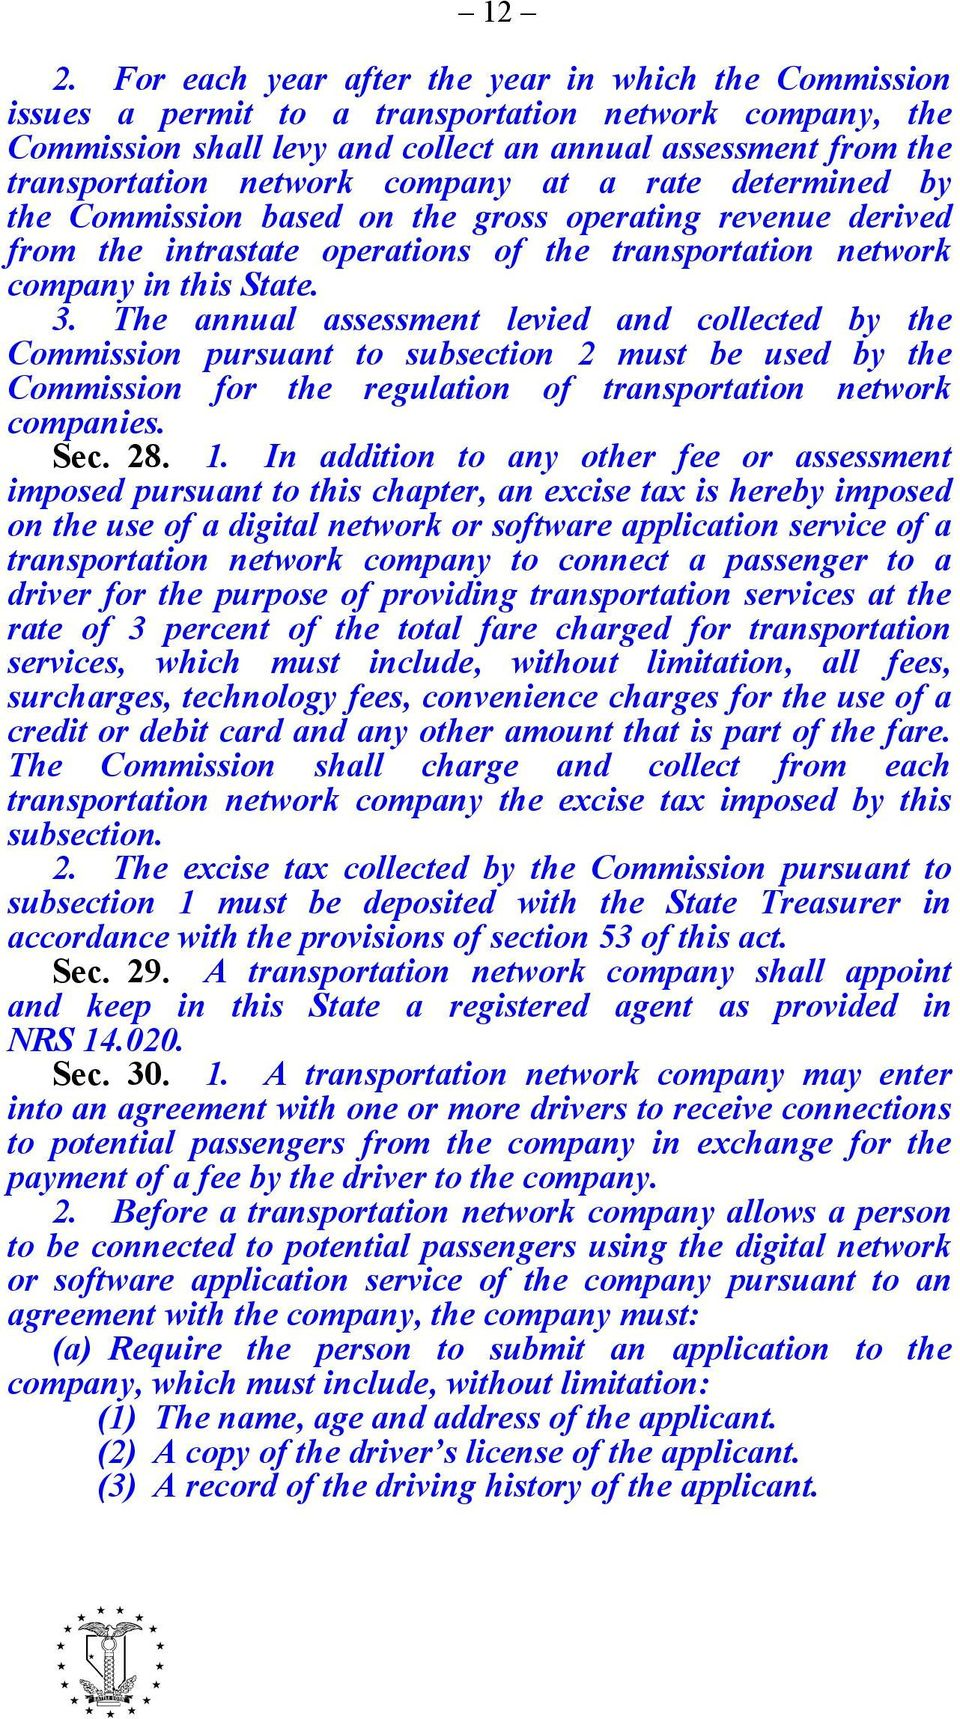 The annual assessment levied and collected by the Commission pursuant to subsection 2 must be used by the Commission for the regulation of transportation network companies. Sec. 28. 1.